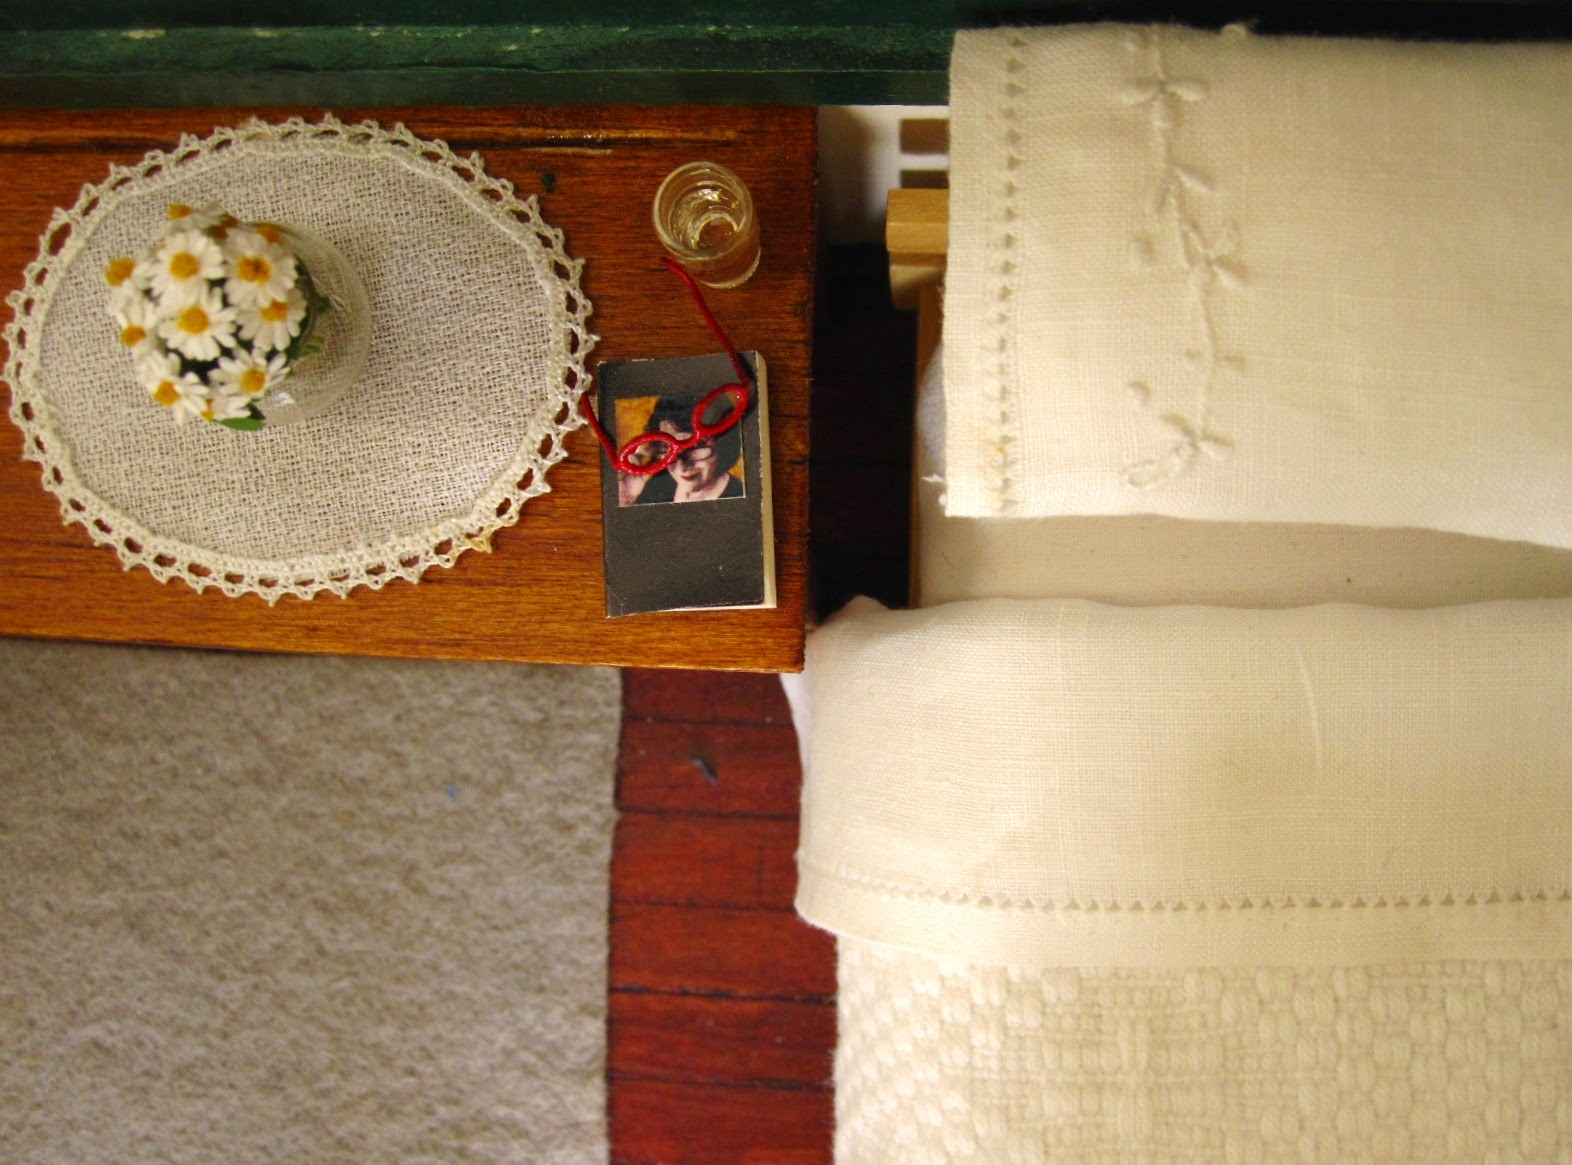 View from above of a modern miniature doll's house bed with white cotton embroidered bedding . On the bedside table is a glass of water, a diary and reading glasses and a vase of daisies.